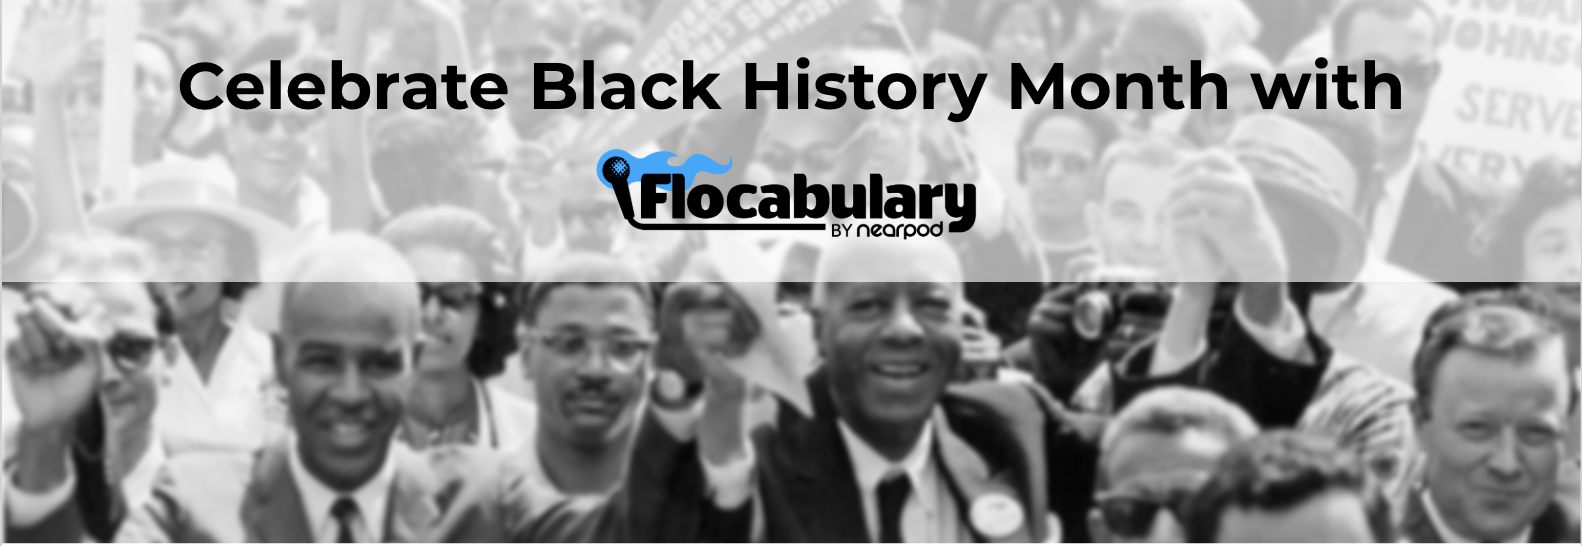 Celebrate Black History Month With Flocabulary